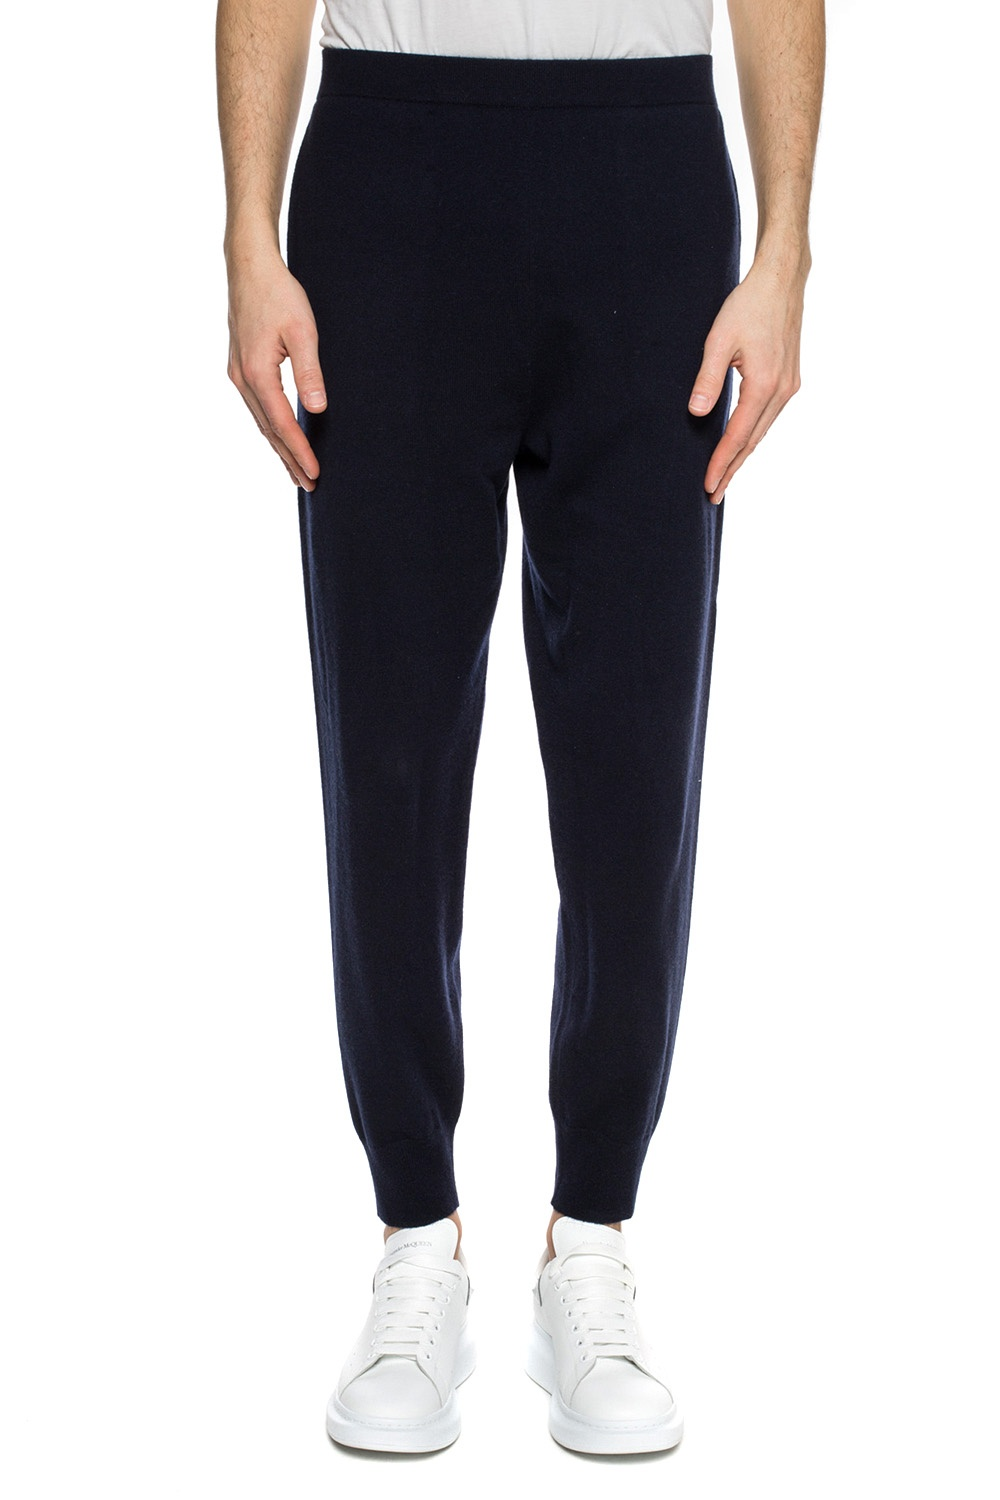 JIL SANDER Loose-fitting trousers